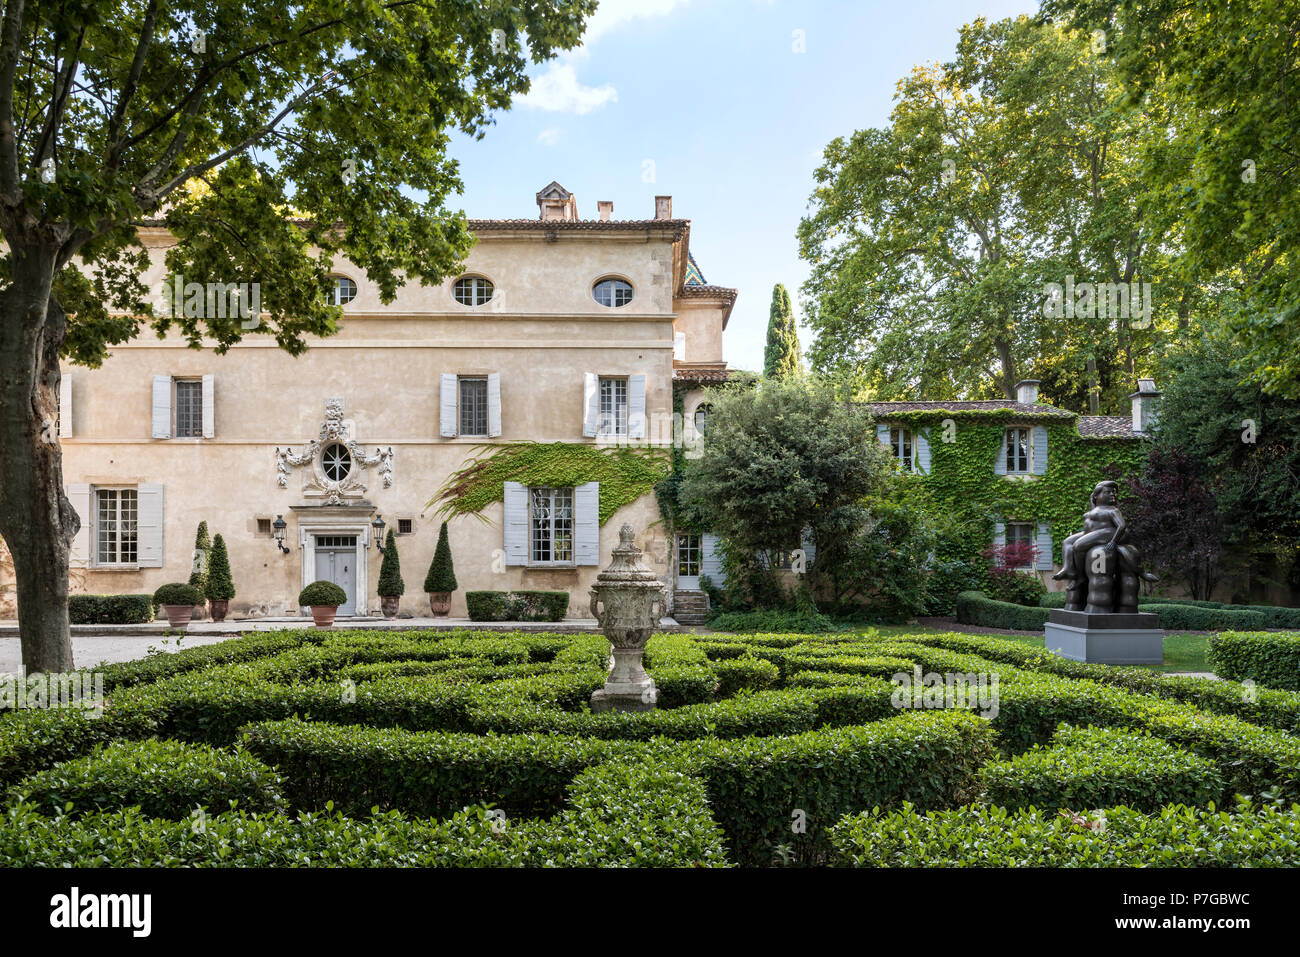 Exterior facade and grounds of 18th century chateaux in St Remy de Provence - Stock Image